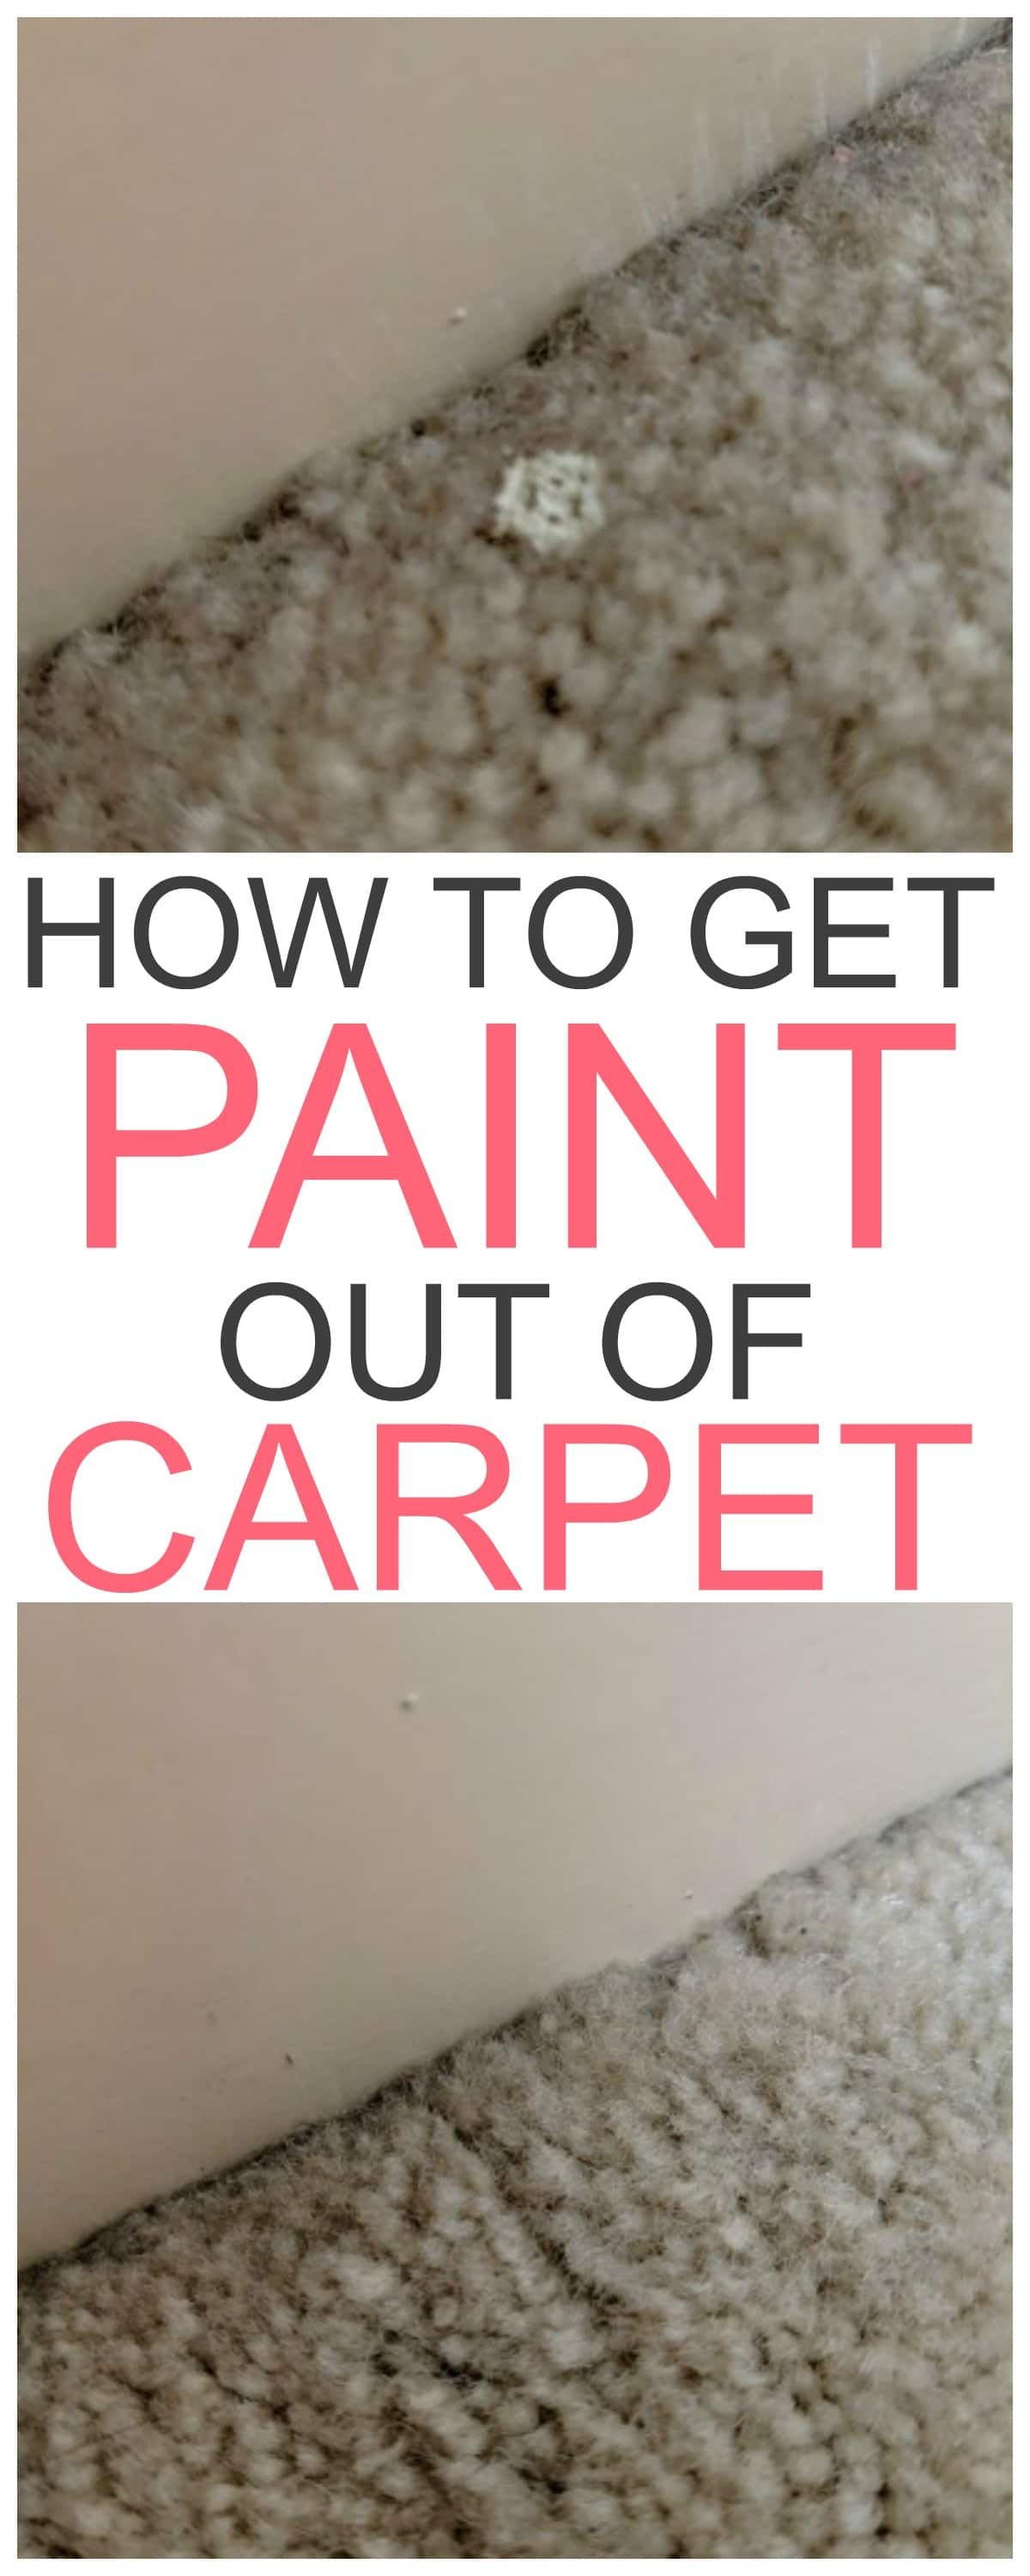 How To Get Paint Out Of Carpet Cleaning Hacks House Cleaning